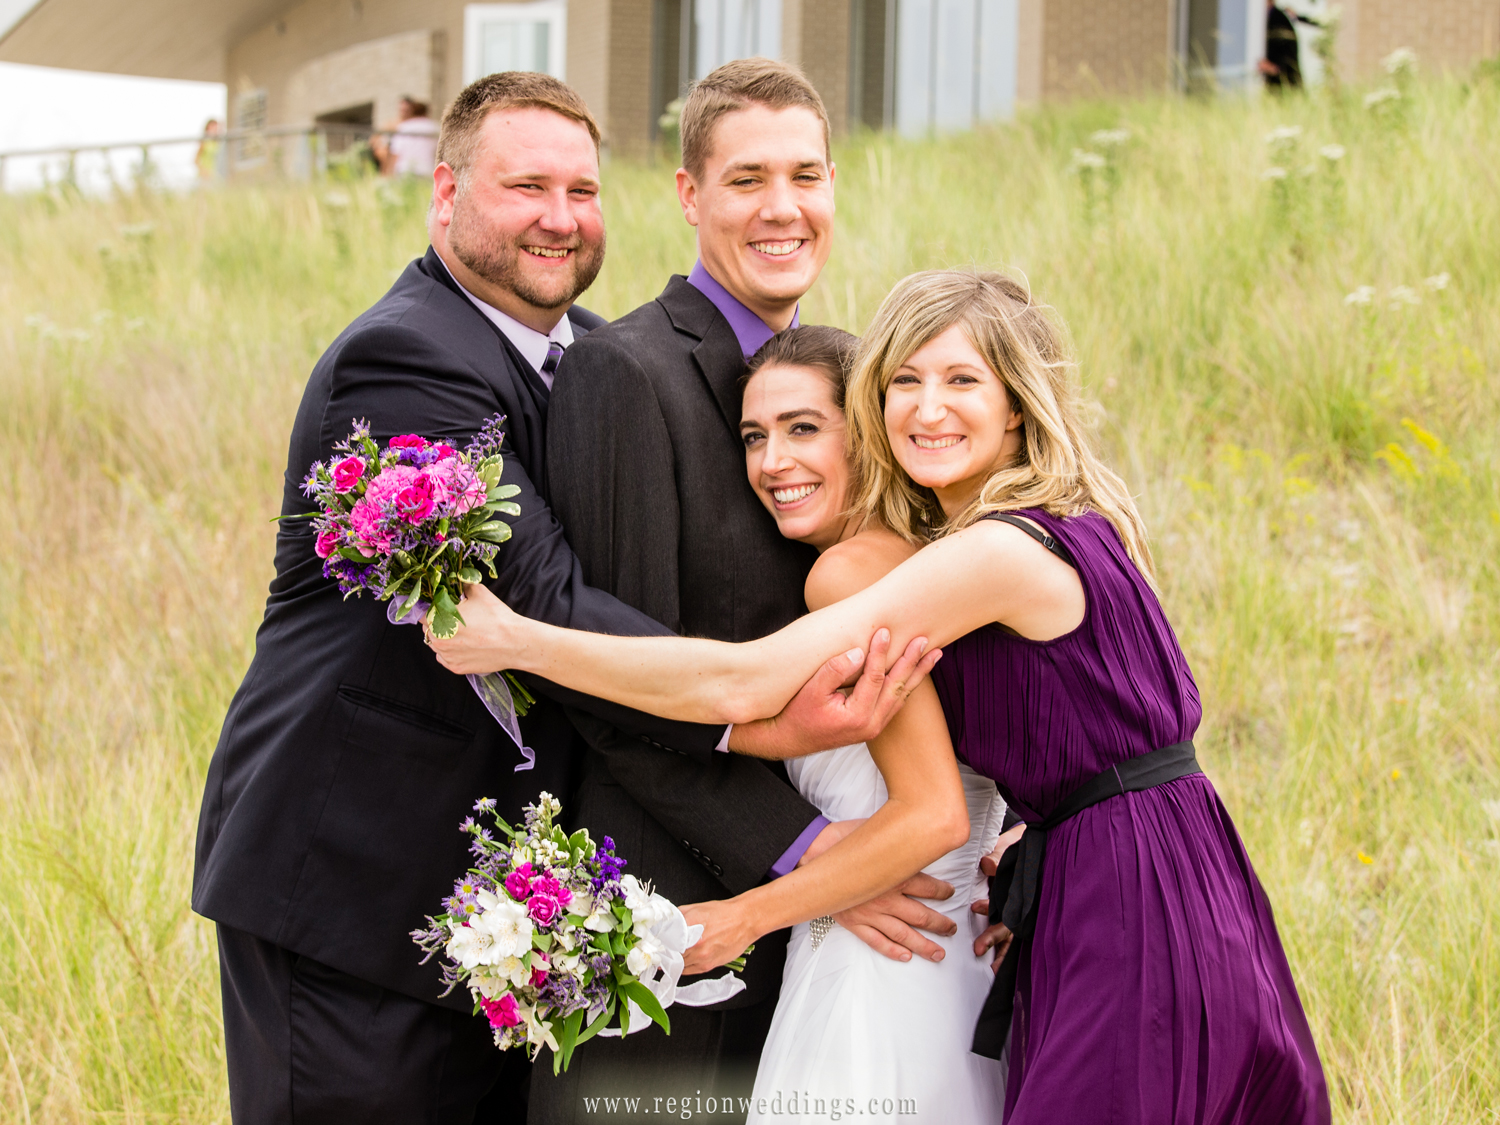 The best man and maid of honor engulf the bride and groom with a group hug on the beach of the Portage River Walk.